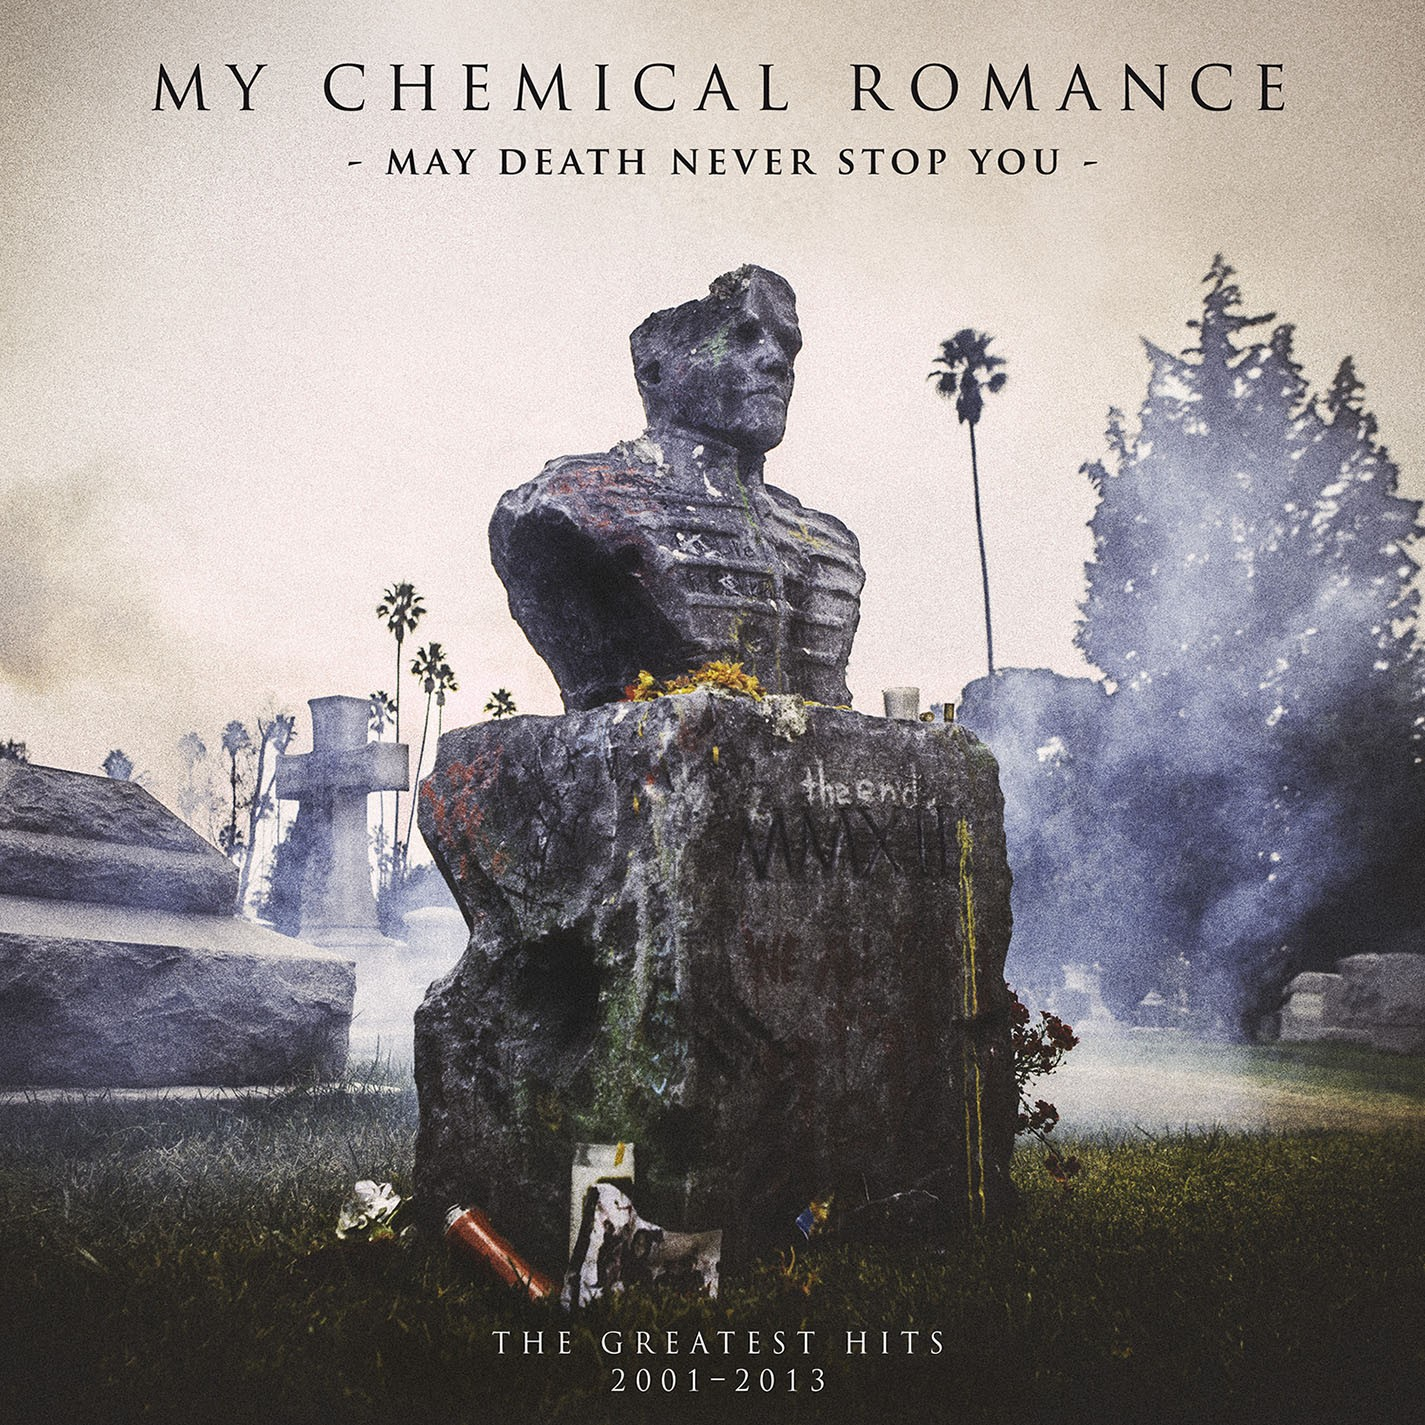 My Chemical Romance - May Death Never Stop You Cassette